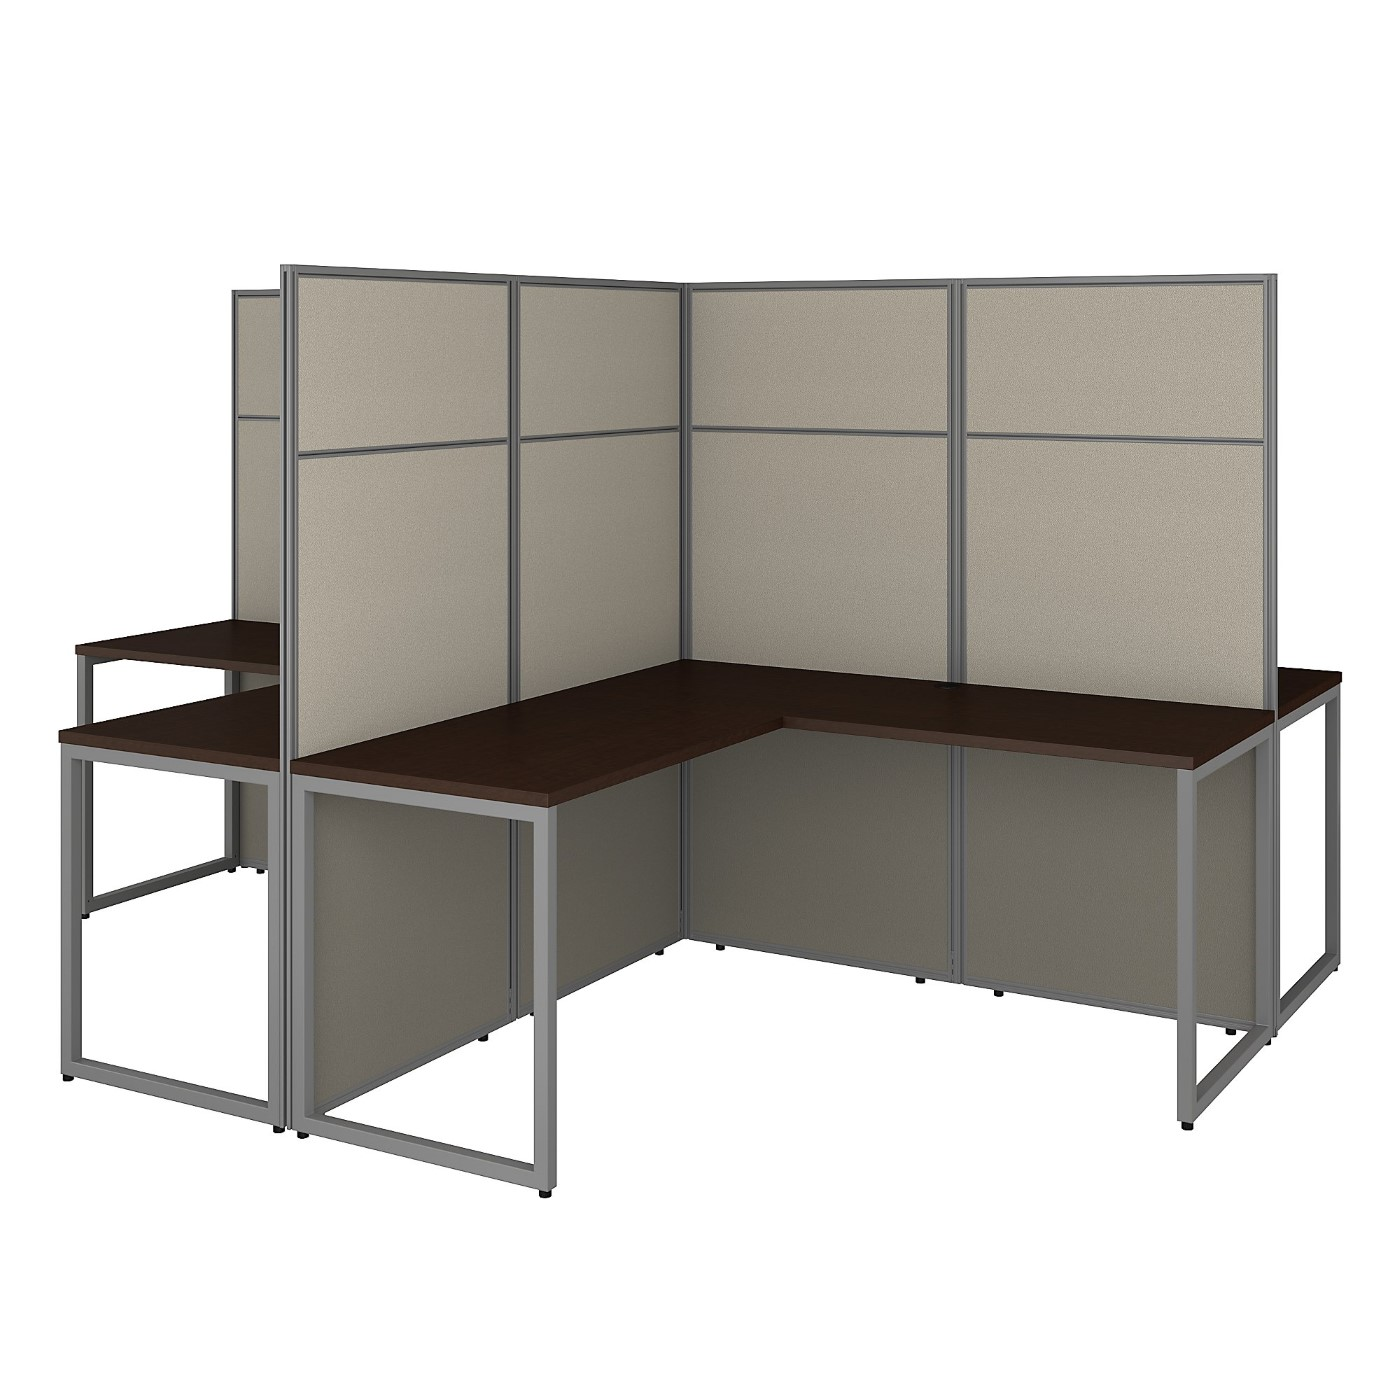 BUSH BUSINESS FURNITURE EASY OFFICE 60W 4 PERSON L SHAPED CUBICLE DESK WORKSTATION WITH 66H PANELS. FREE SHIPPING 30H x 72L x 72W  VIDEO BELOW.